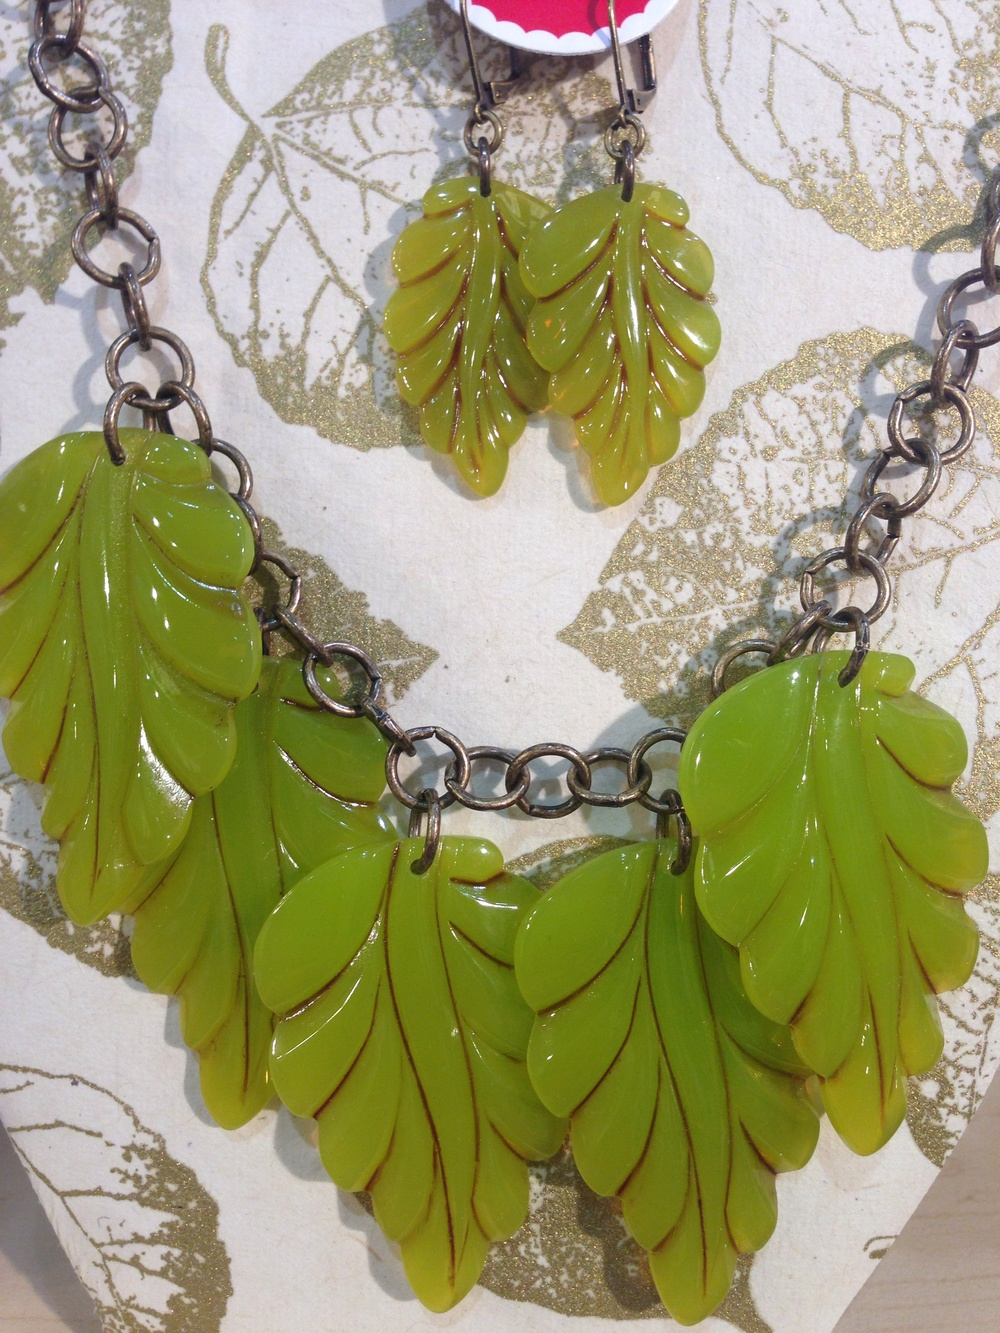 Green leaf necklace and earrings in seaweed!